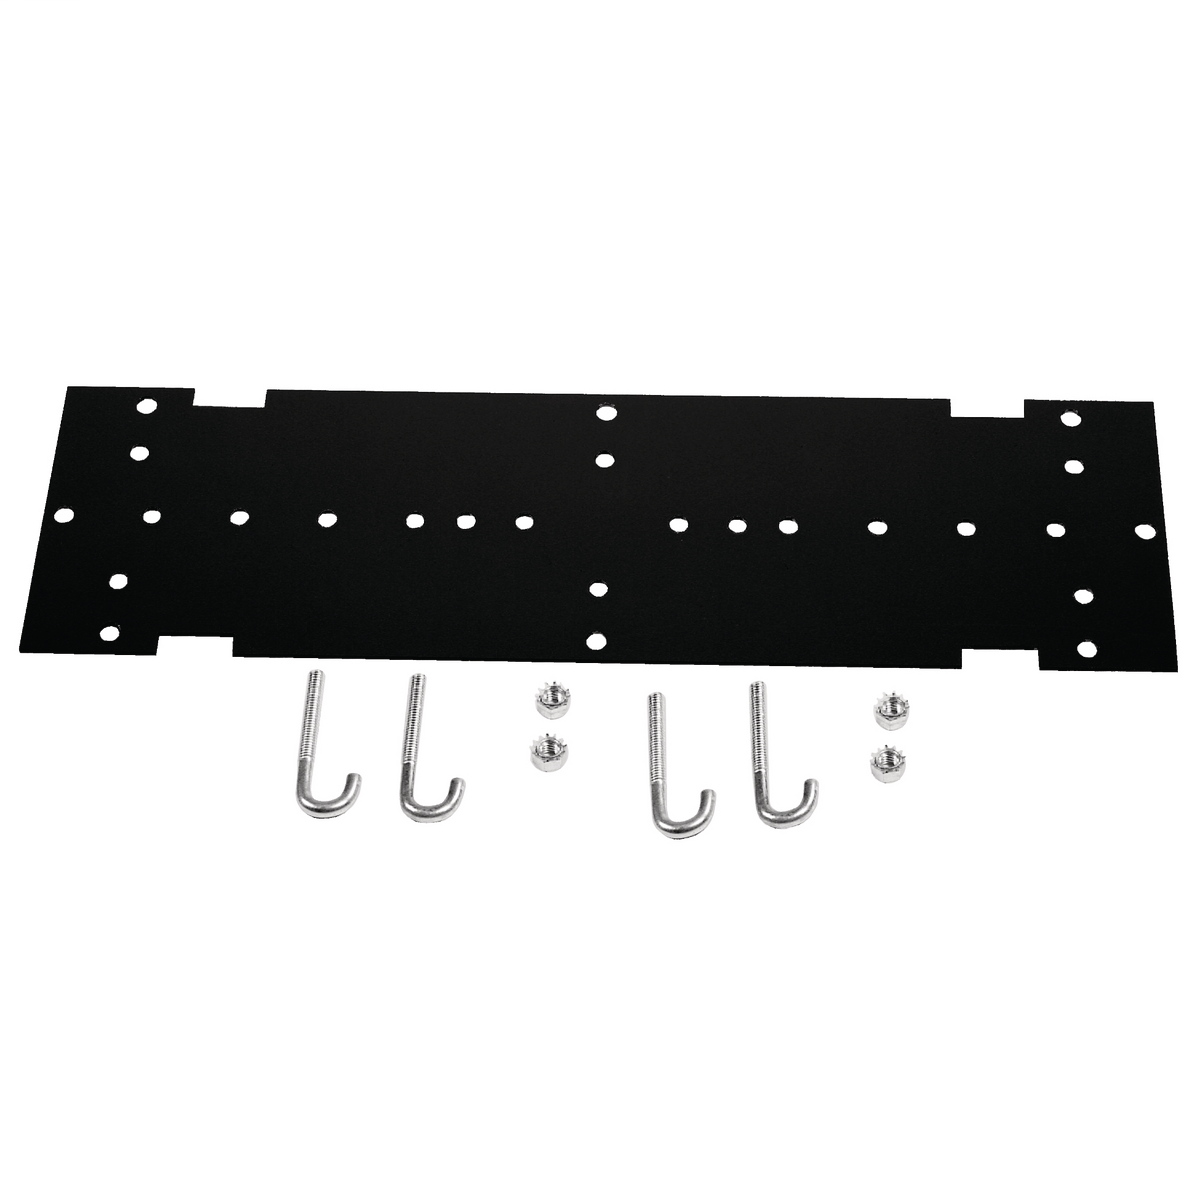 Hubbell Premise Wiring Products, NEXTFRAME Ladder Rack, Mounting Kit toRelay Rack